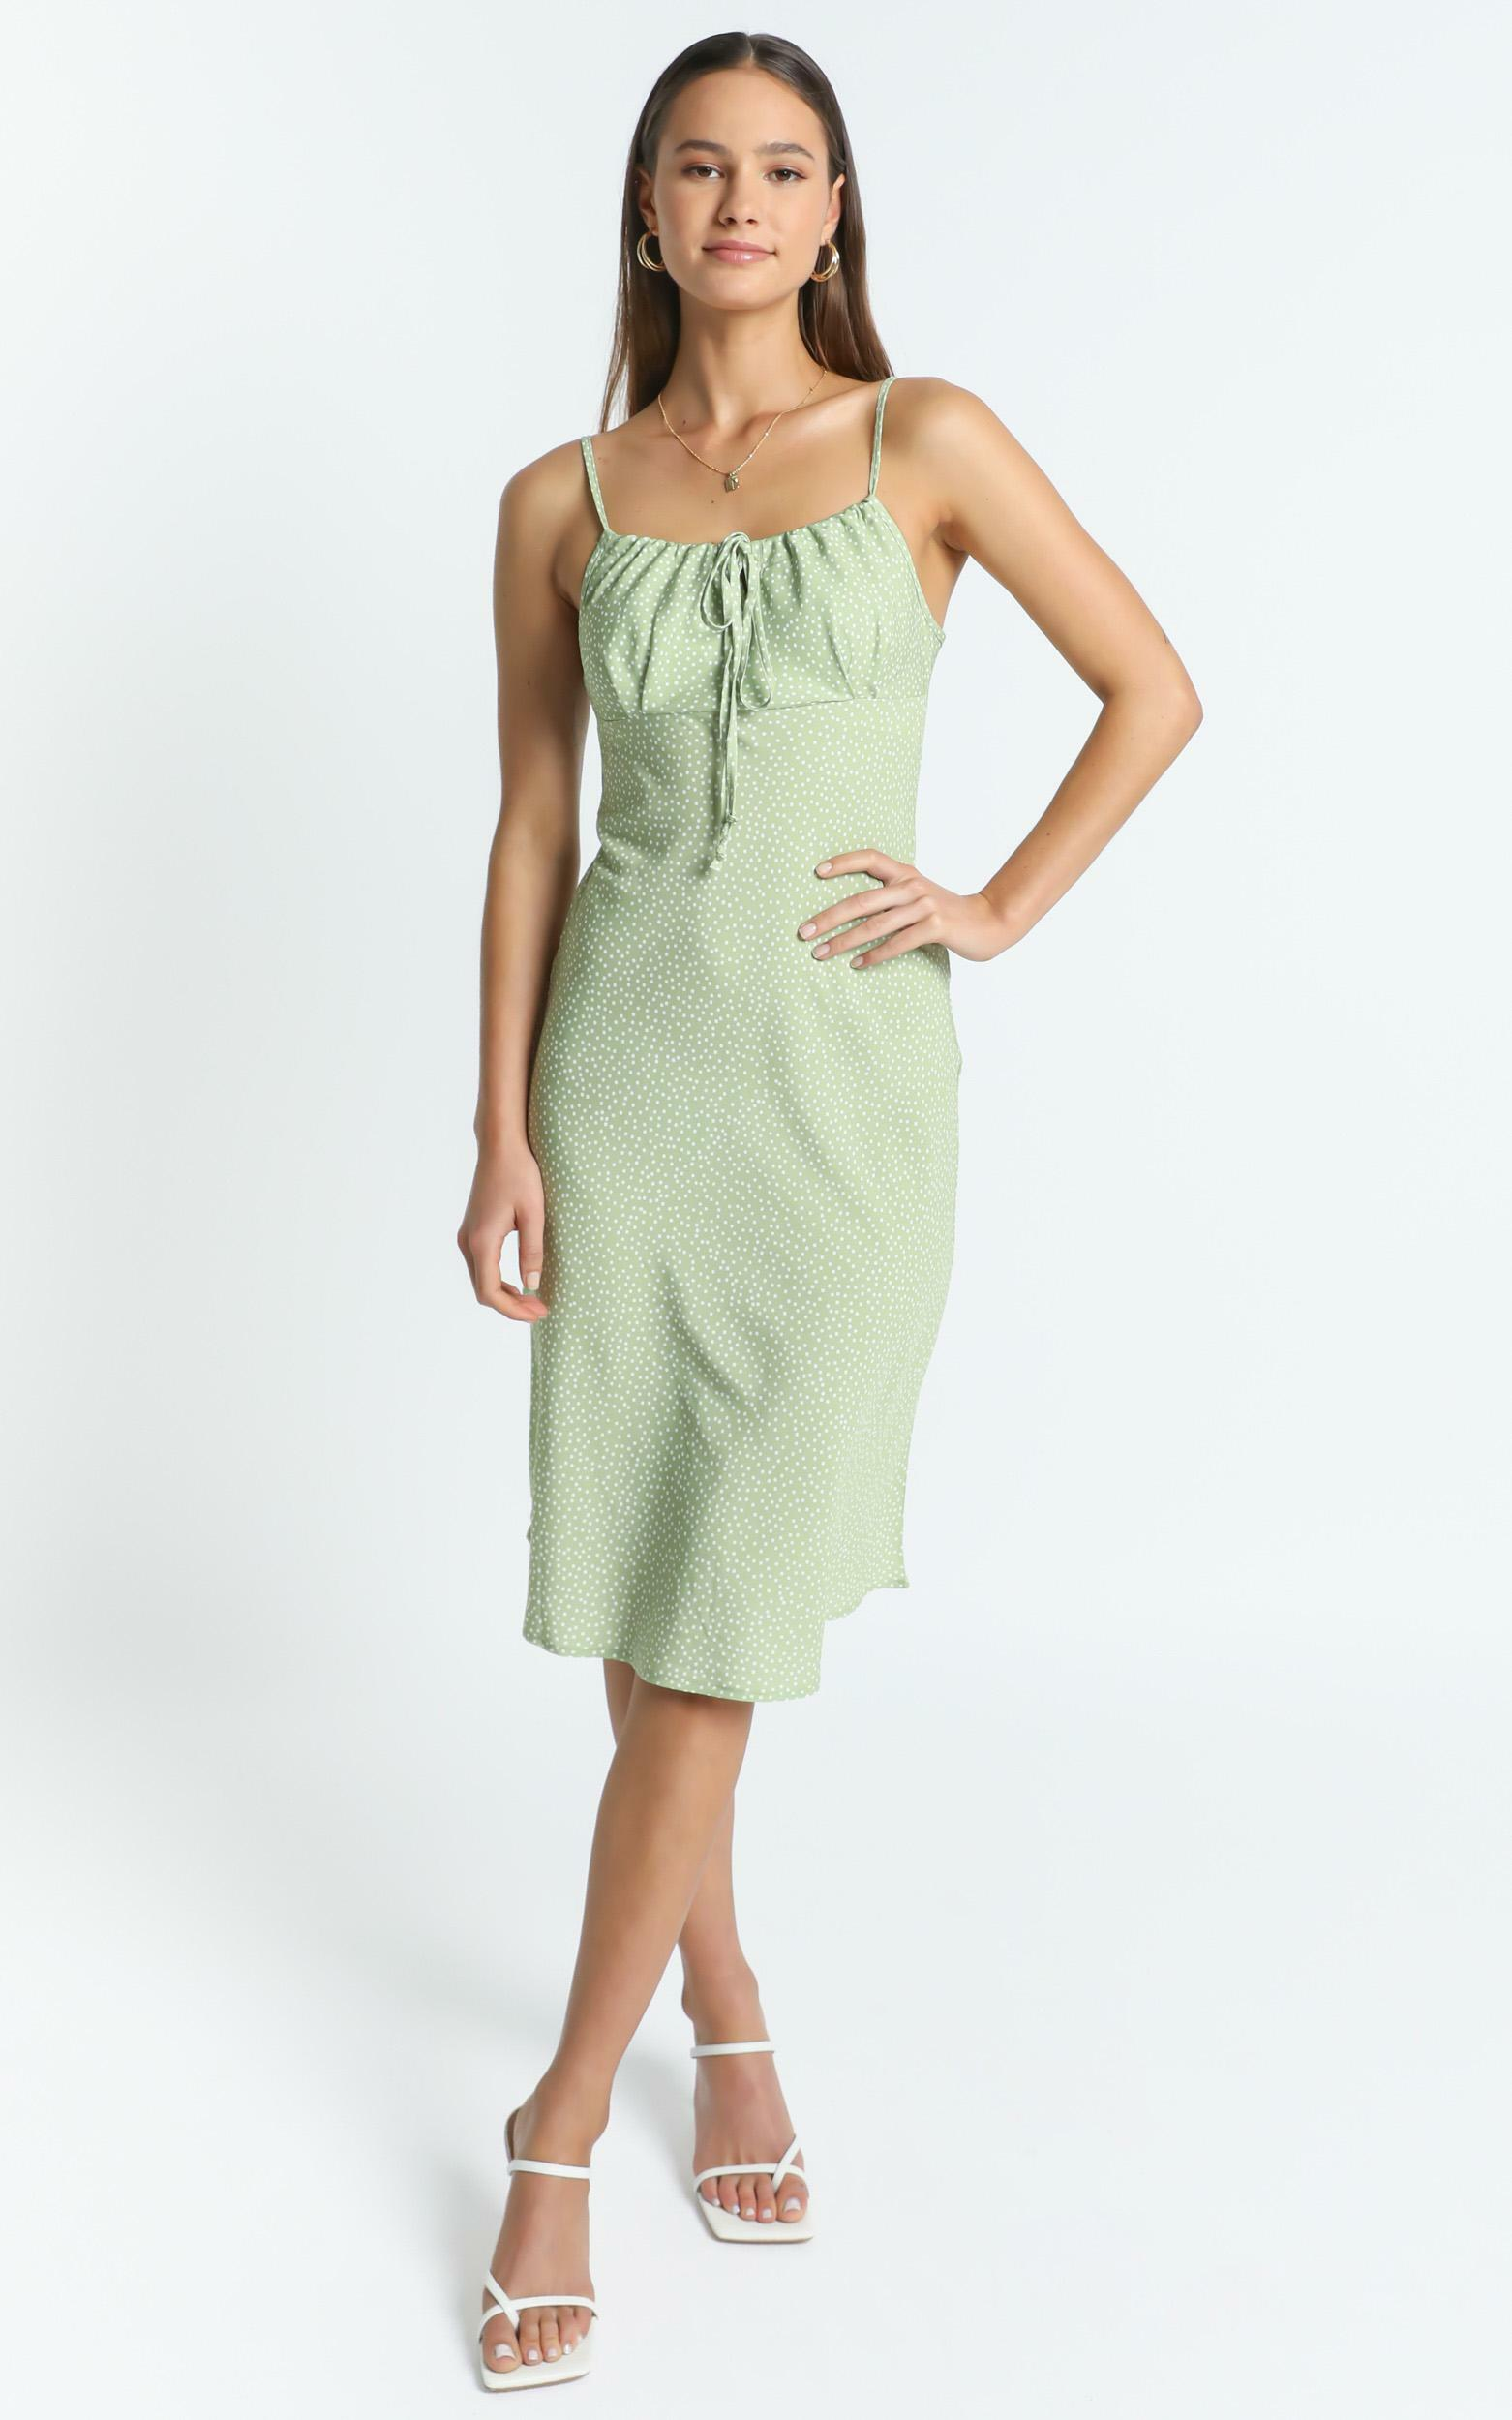 Orson Dress in Green Floral - 8 (S), Green, hi-res image number null